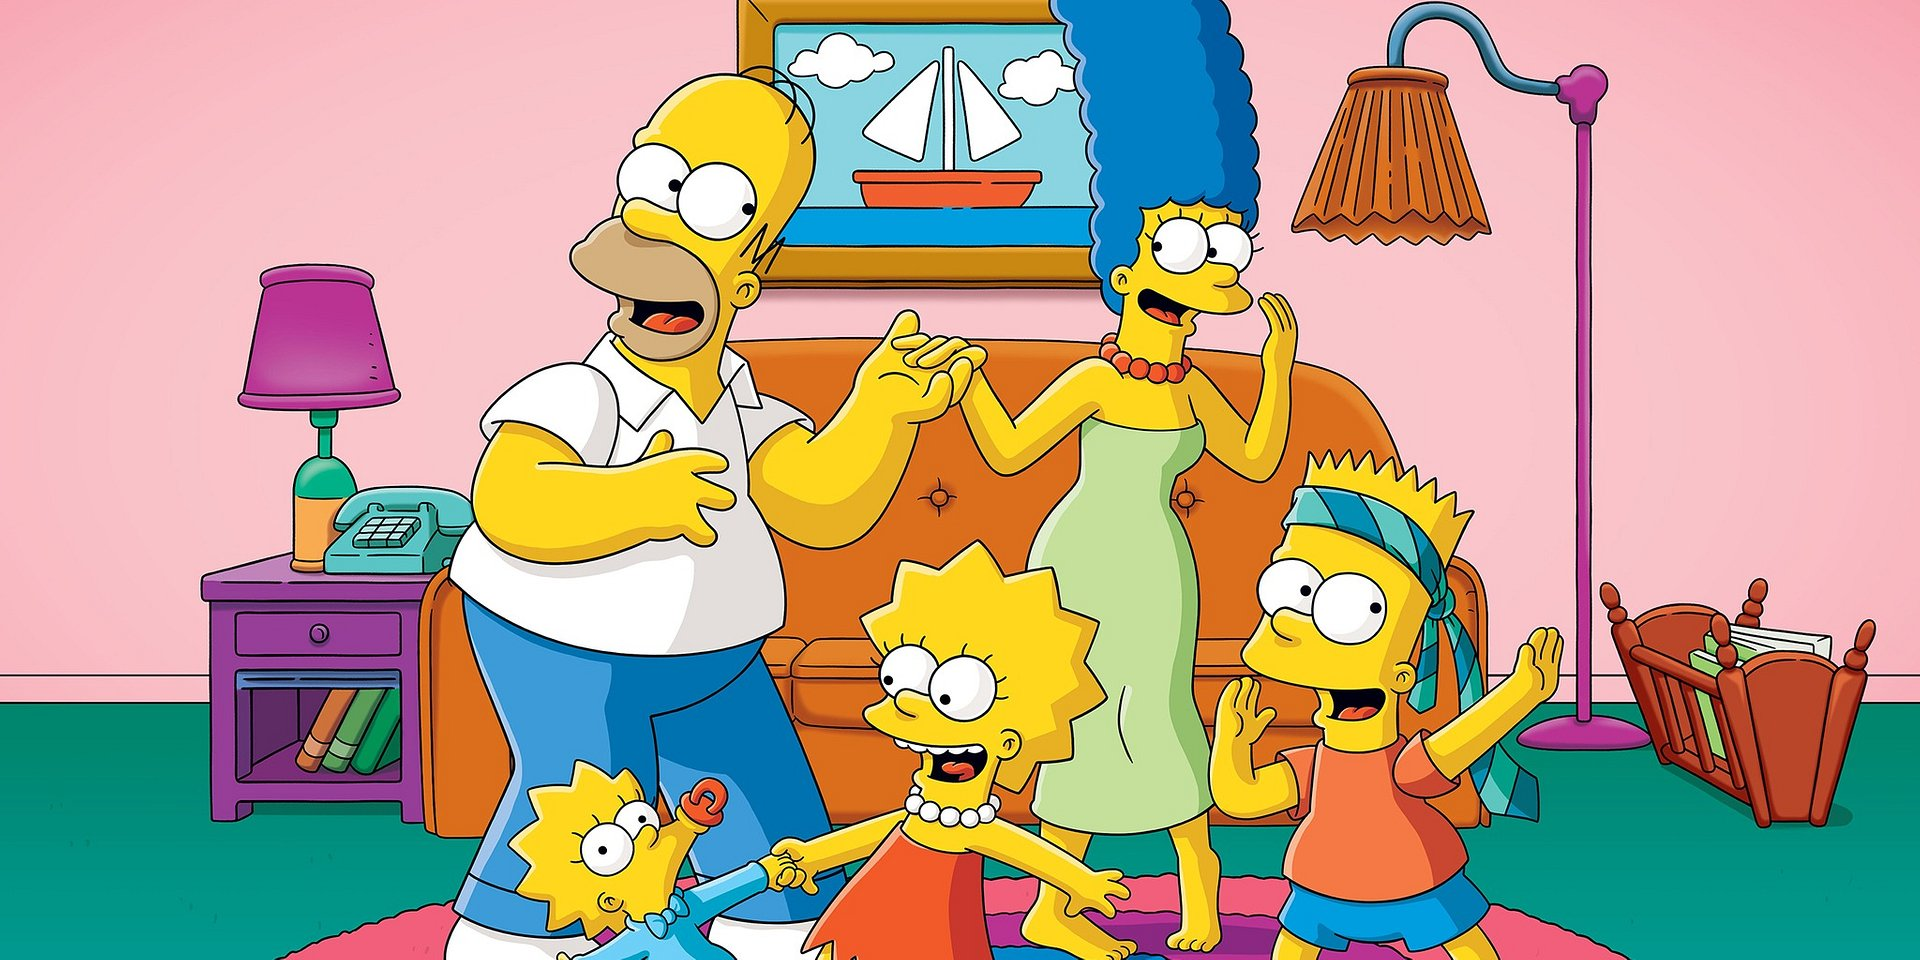 FOX COMEDY ESTREIA 30ª TEMPORADA DE 'OS SIMPSONS'